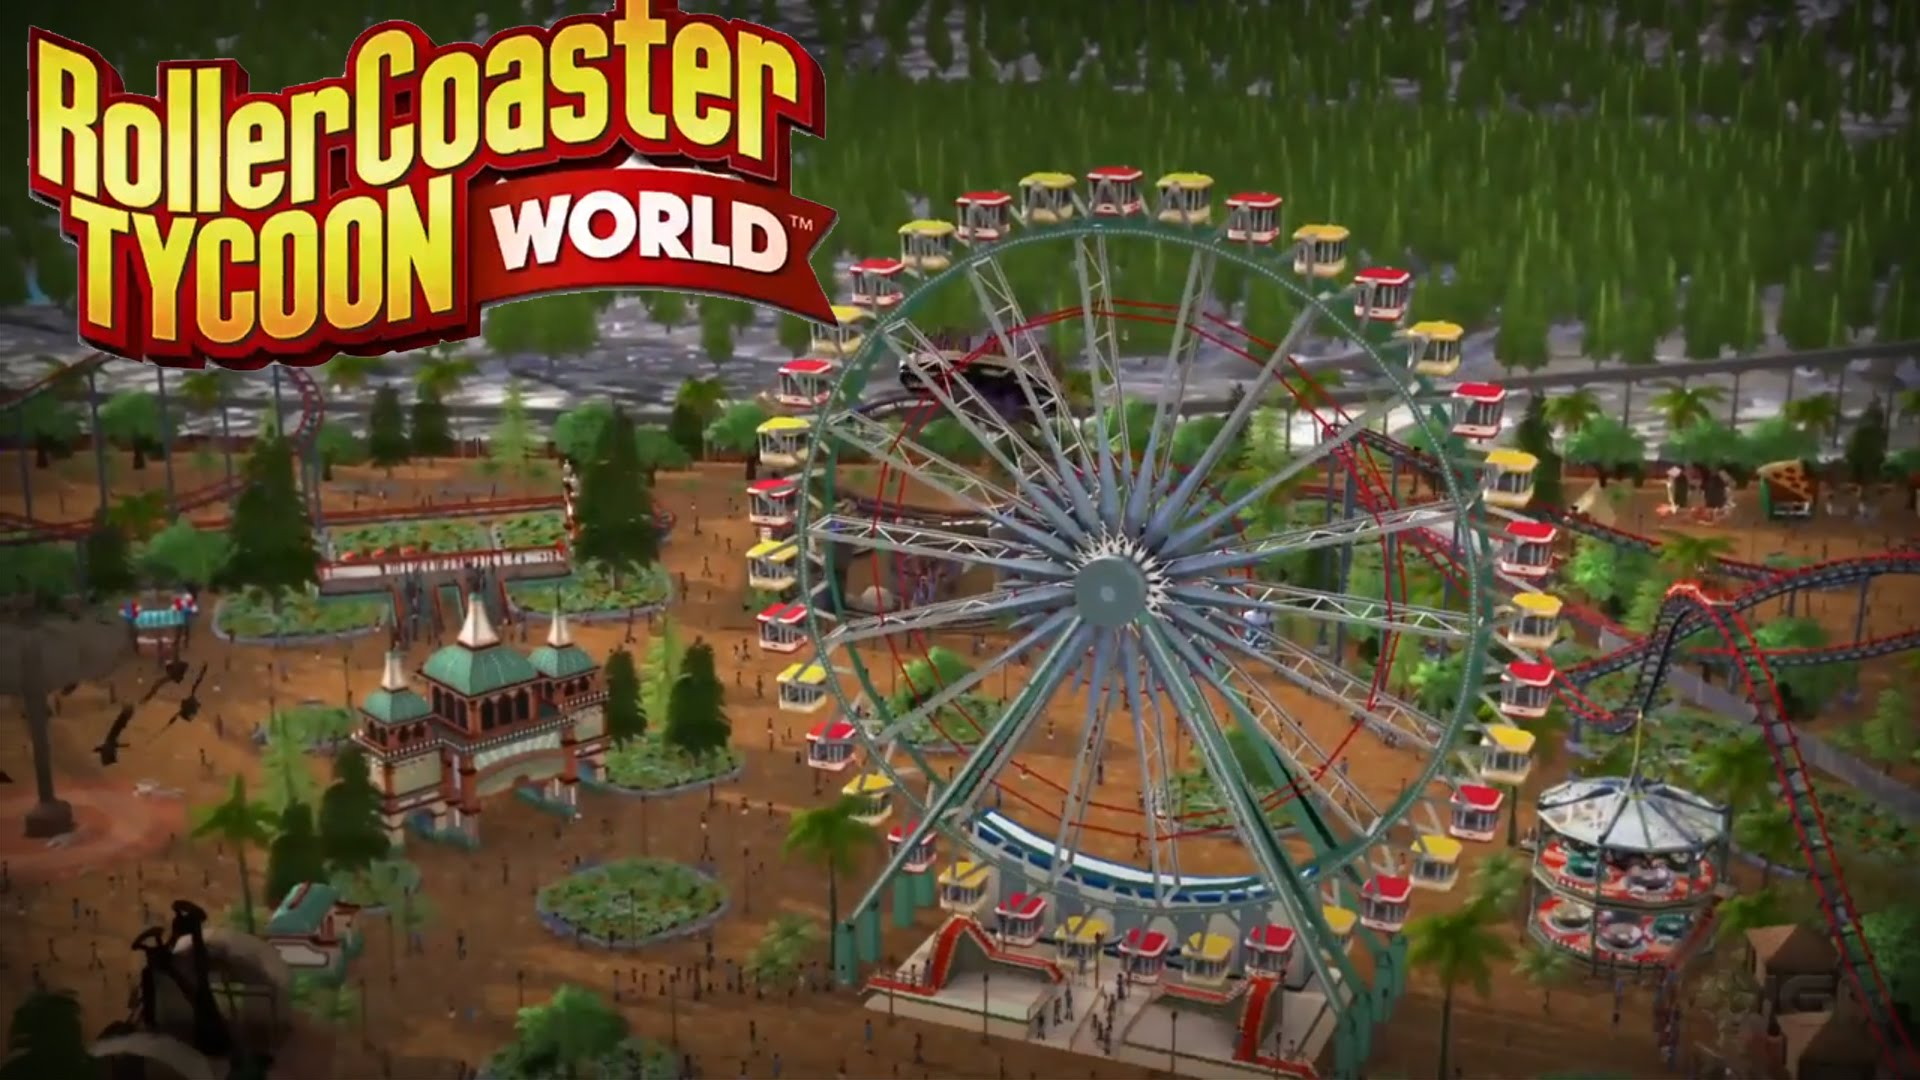 First Gameplay Footage of RollerCoaster Tycoon World Revealed | eTeknix